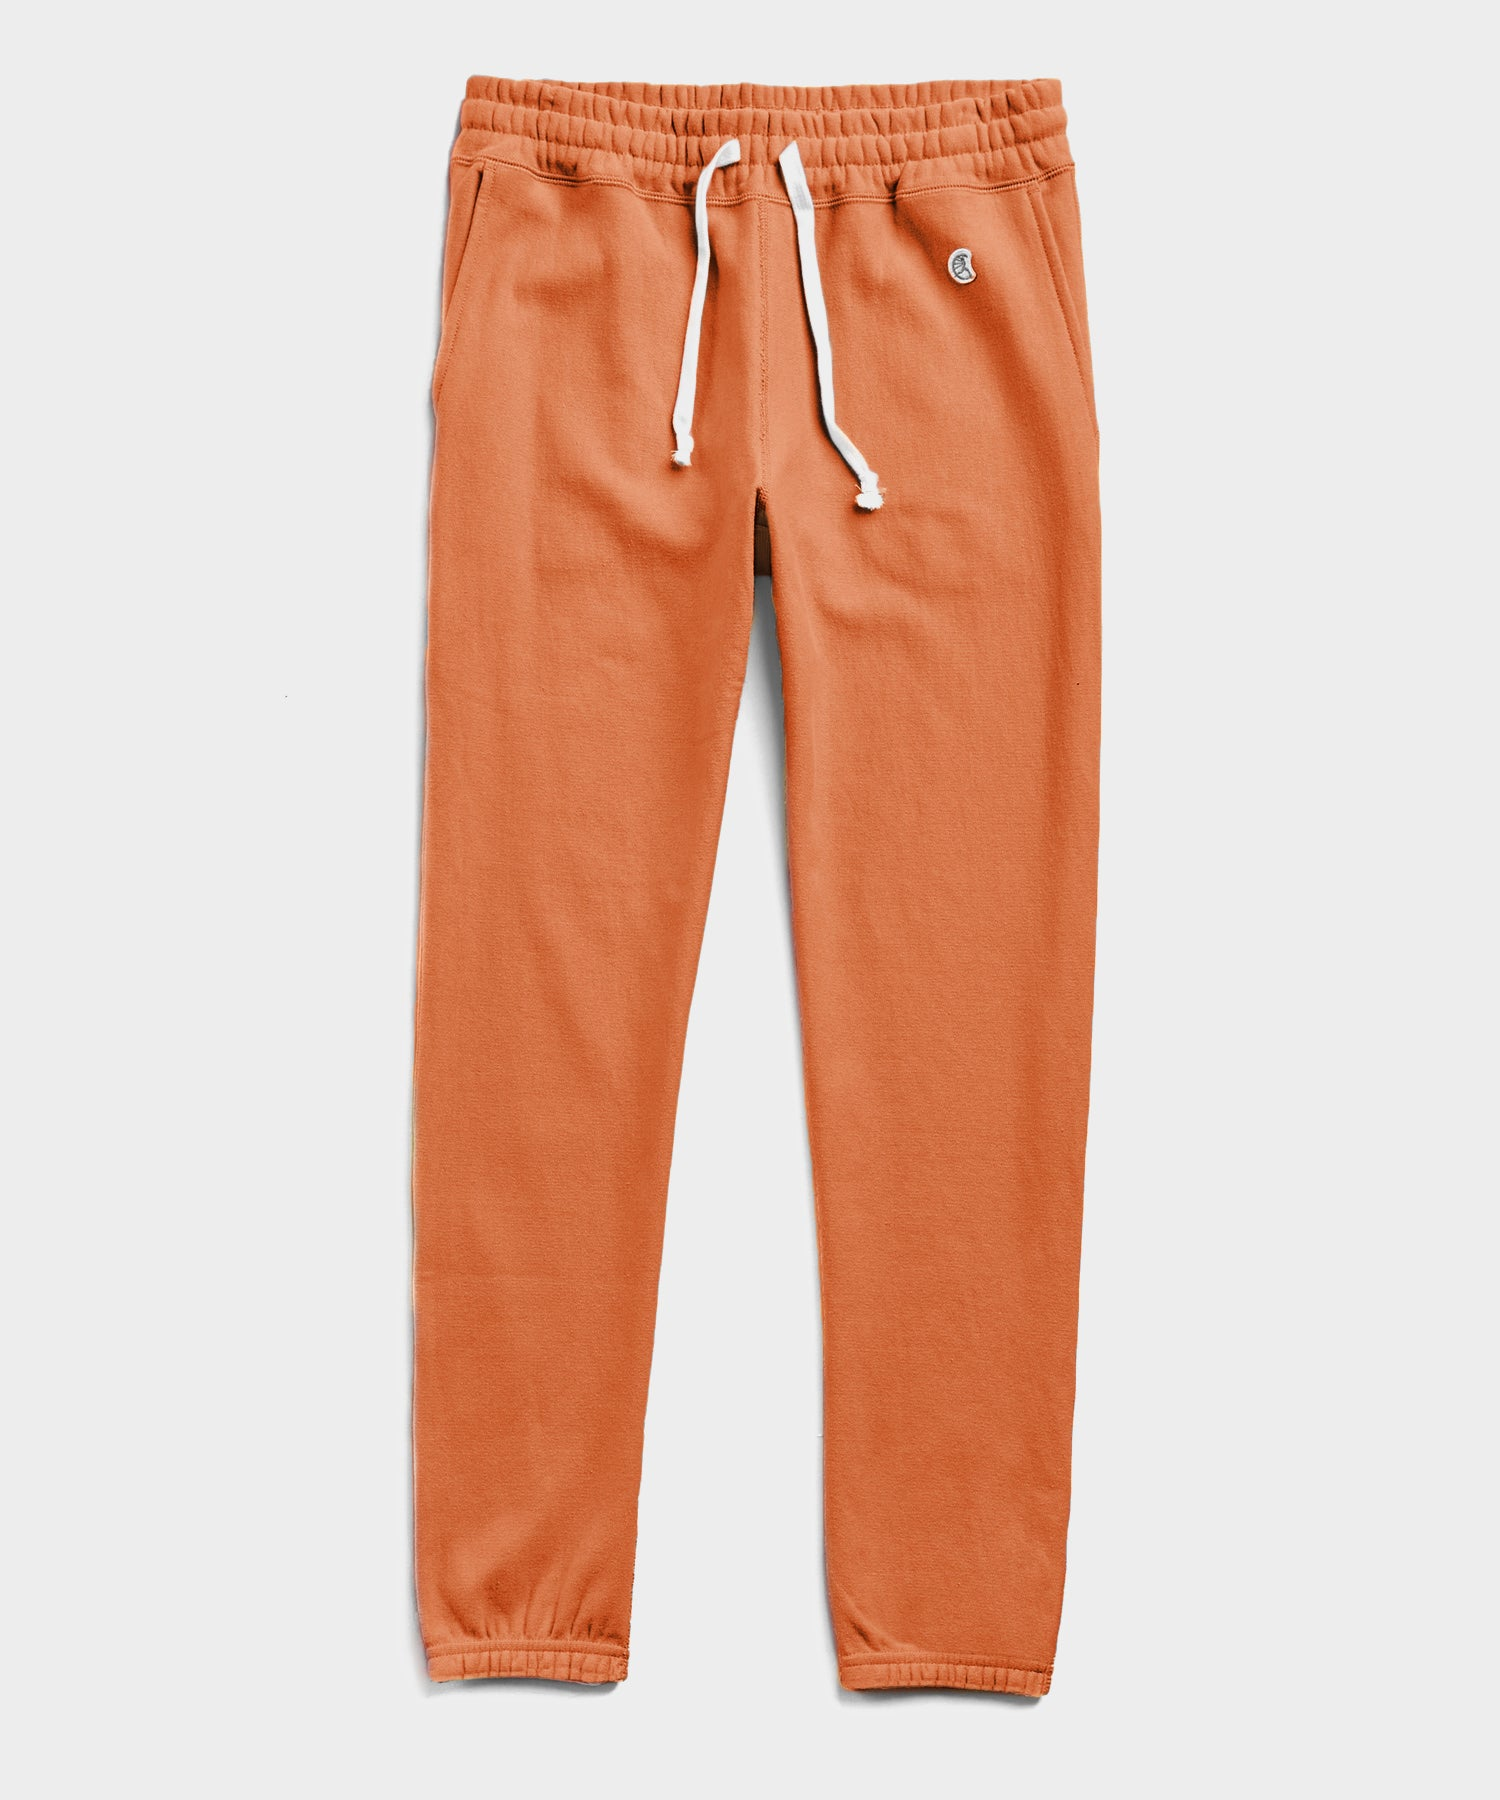 Lightweight Classic Sweatpant in Spice